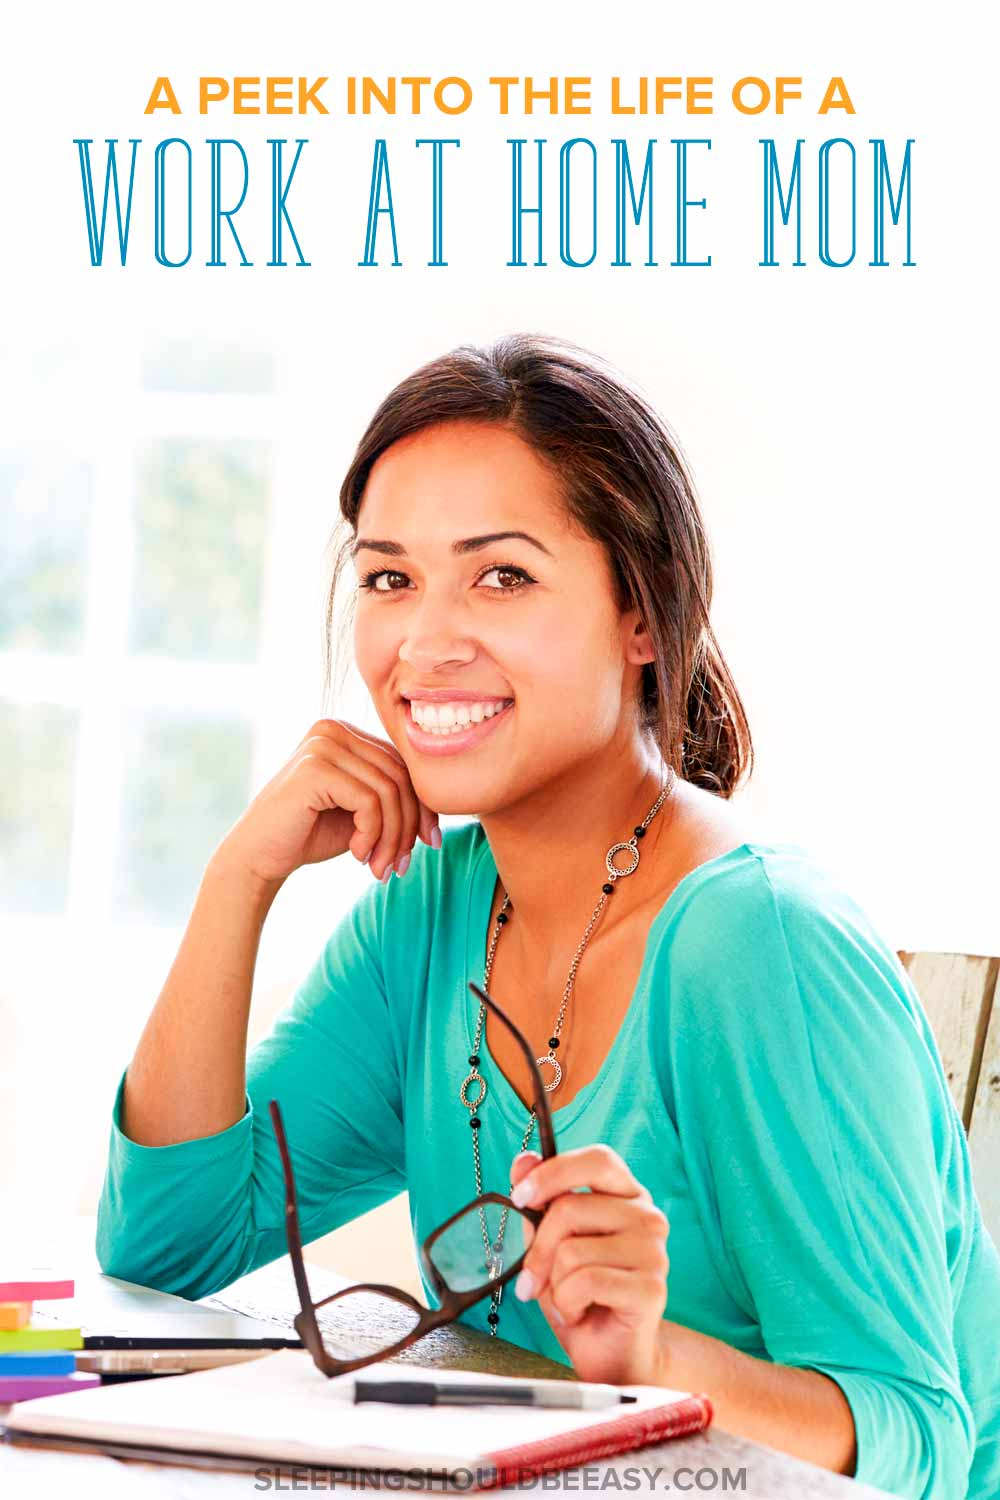 Curious what a work at home mom does? Take a sneak peek into how I balance work, kids and school this fall season.